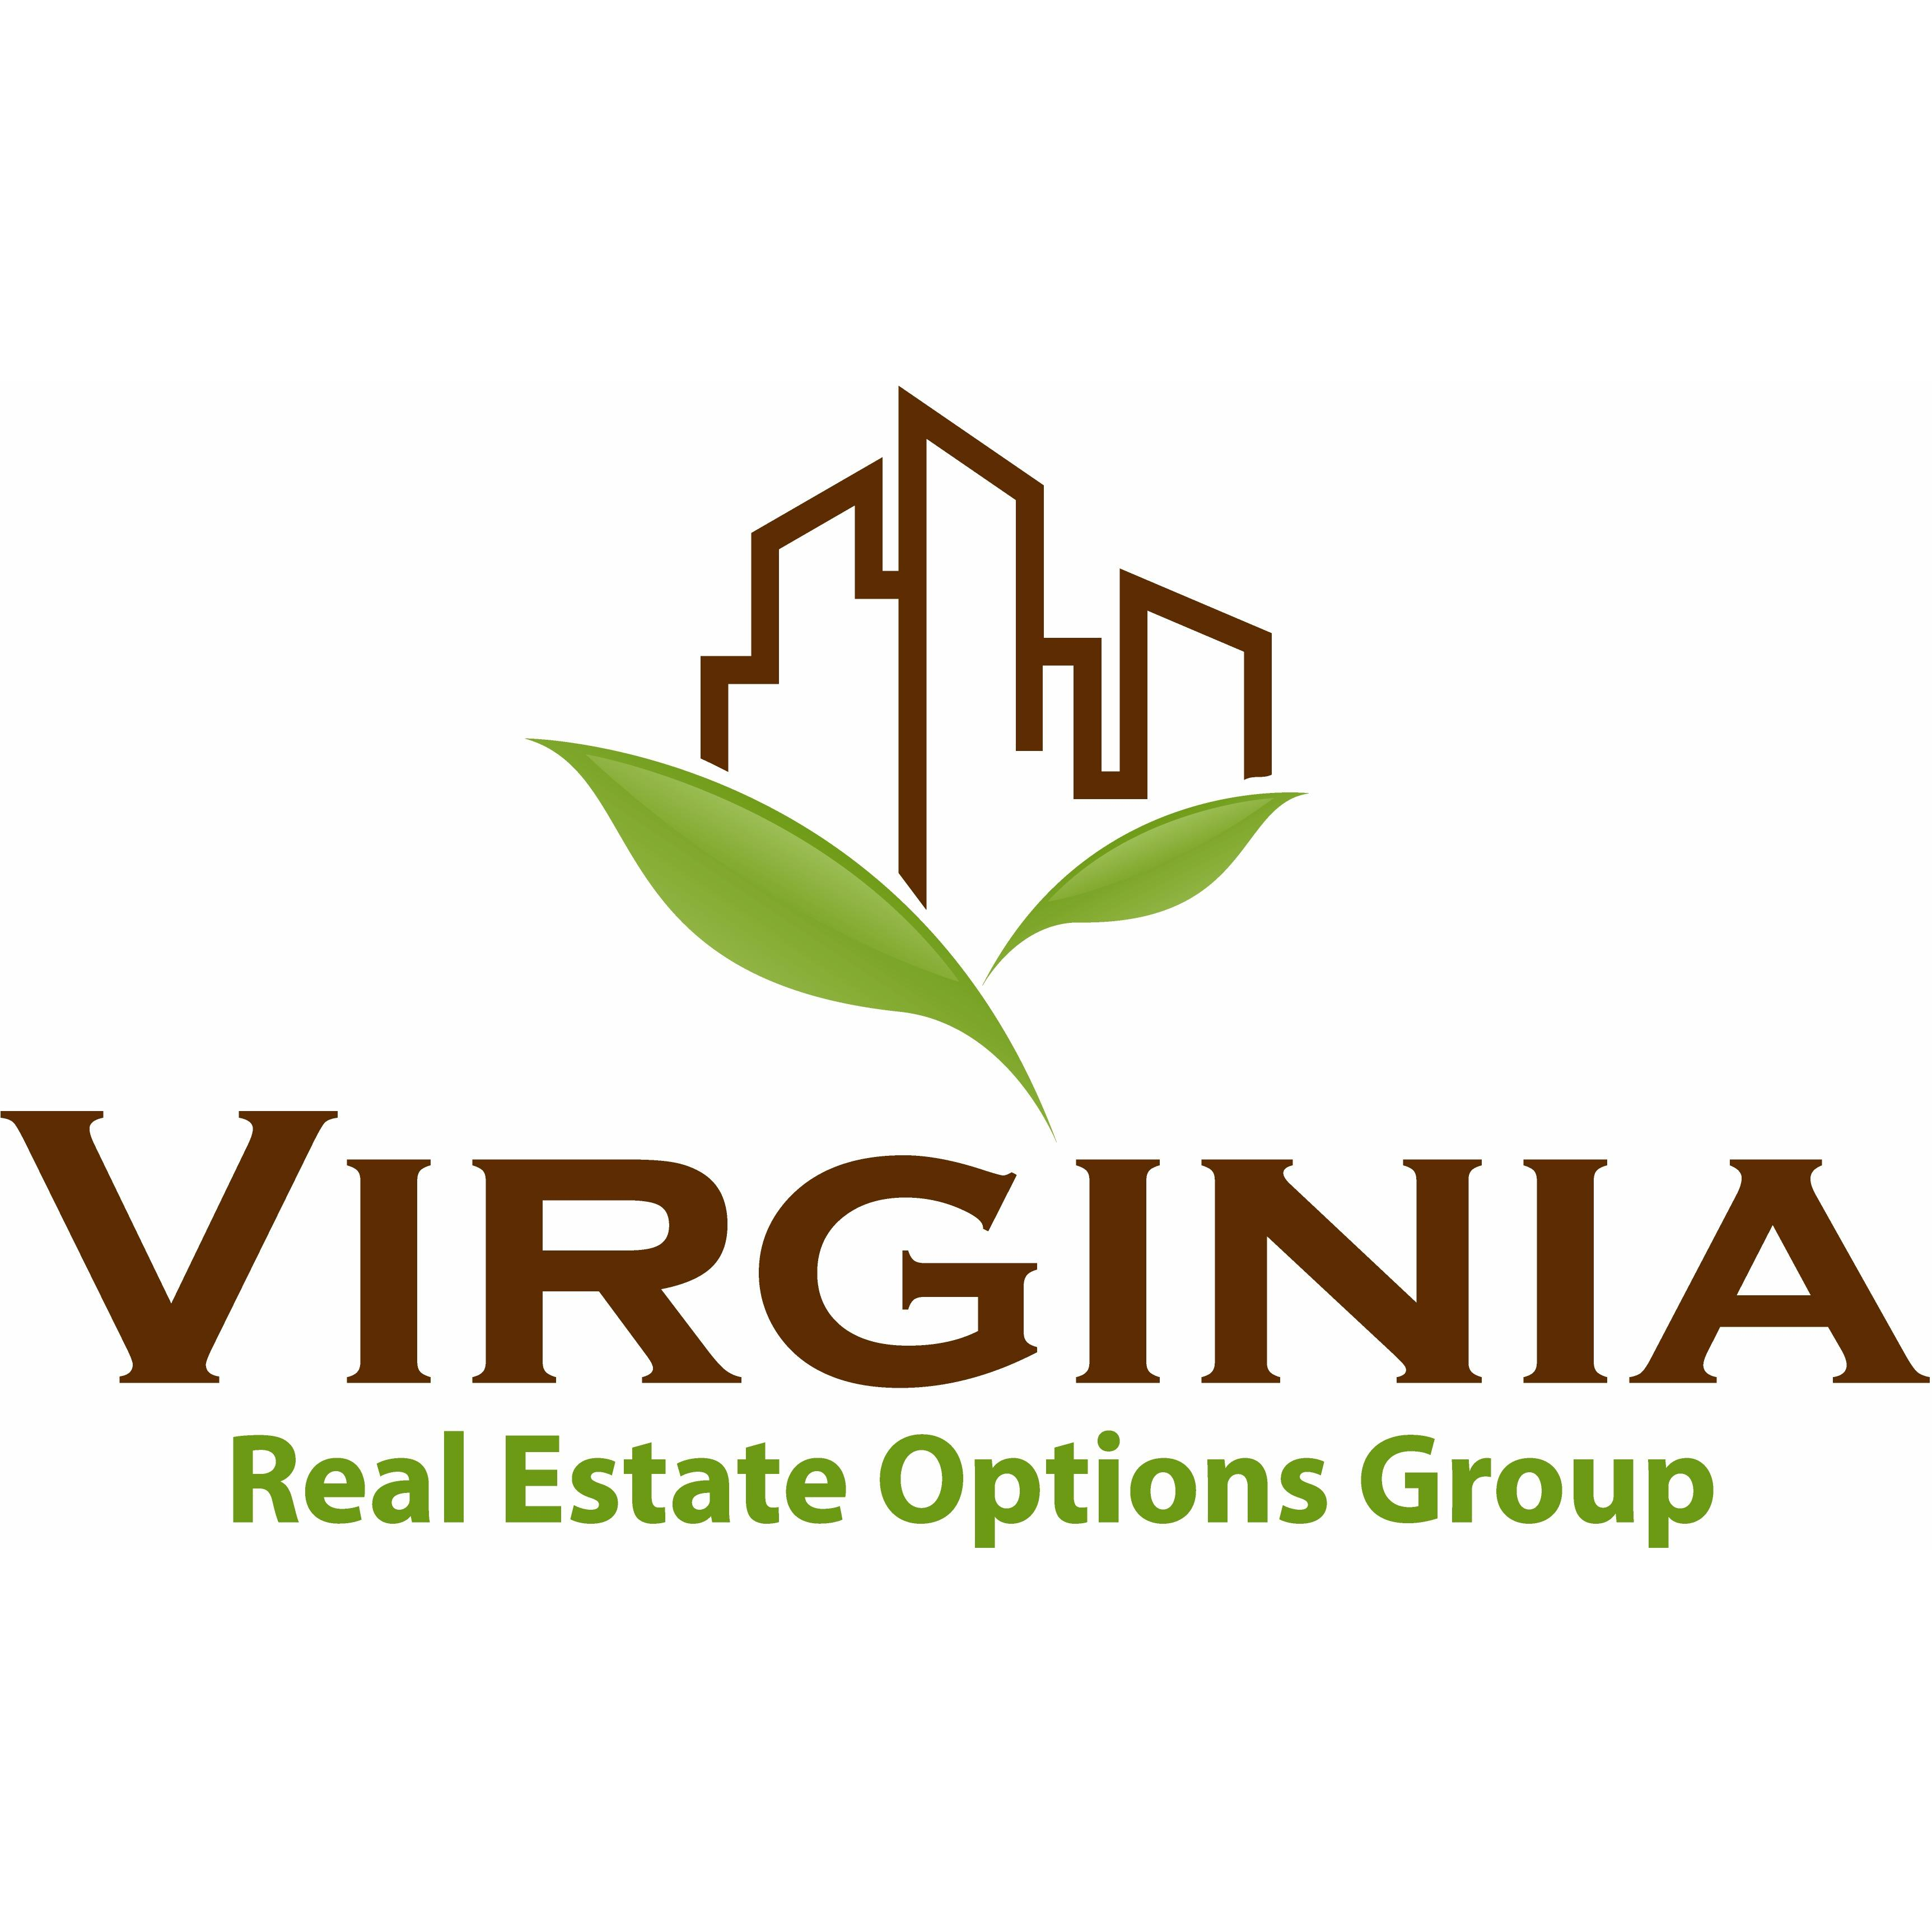 Virginia Real Estate Options Group LLC